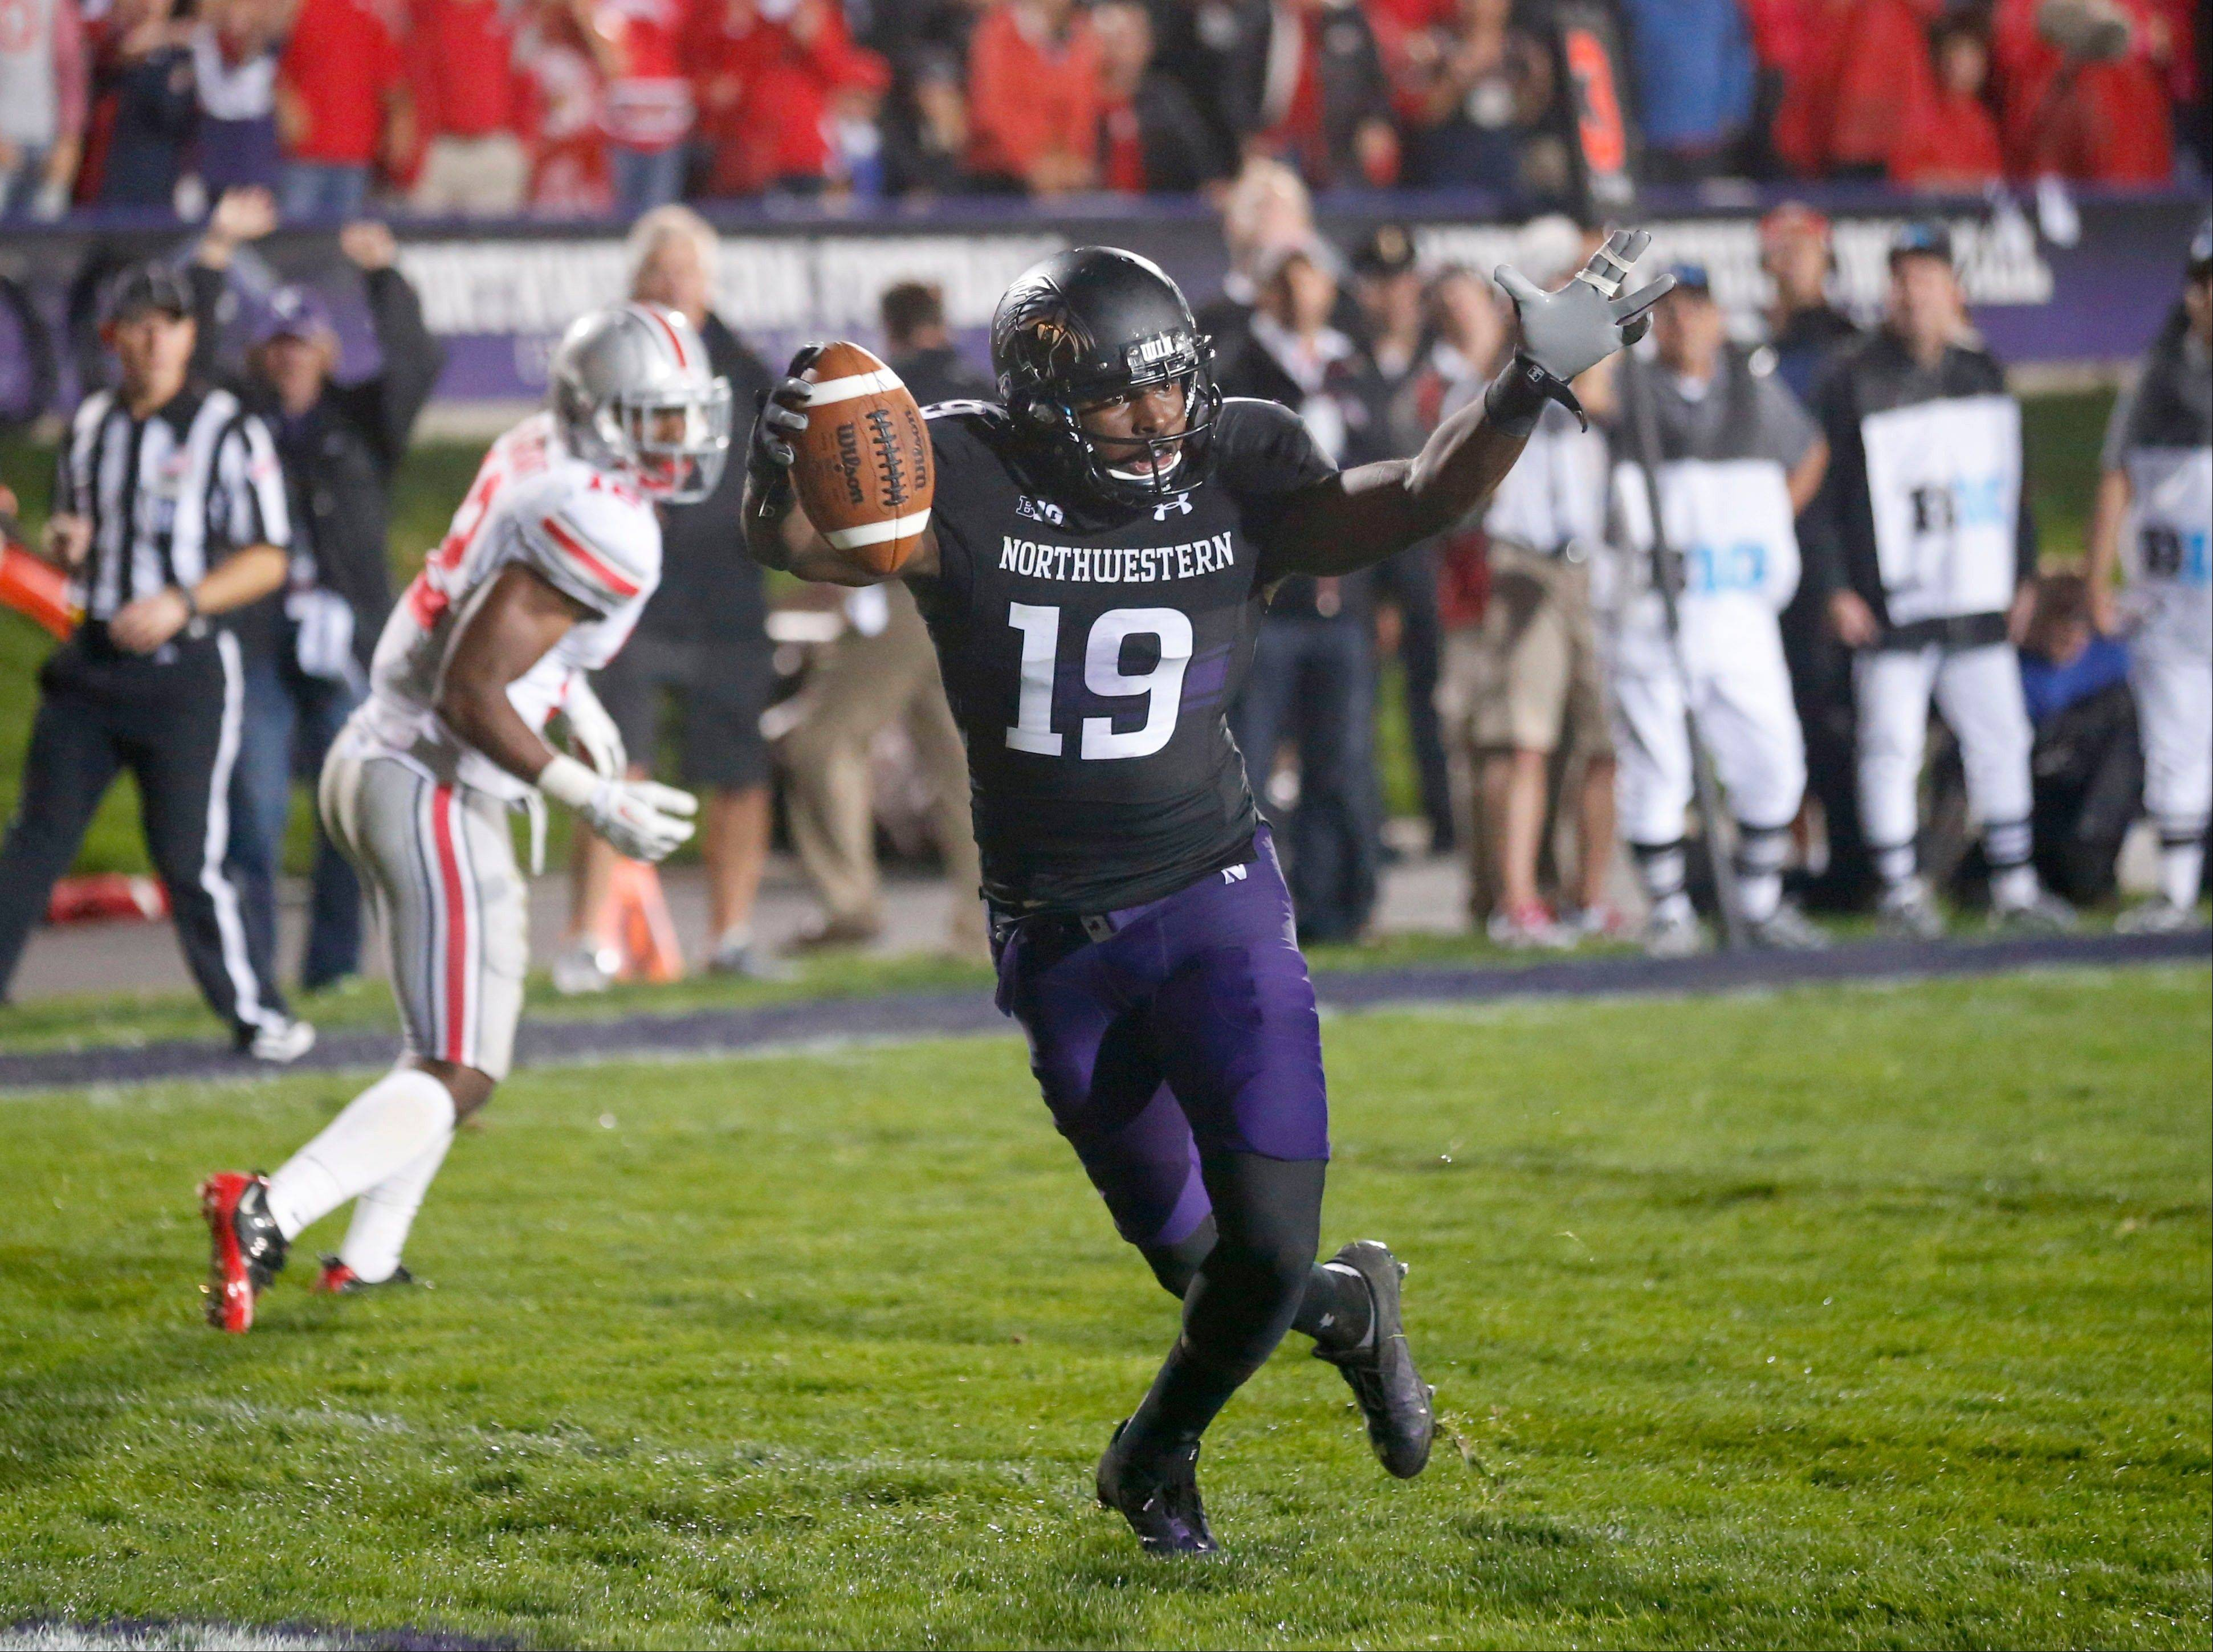 Northwestern wide receiver Cameron Dickerson (19) celebrates his touchdown on a pass from quarterback Trevor Siemian during Saturday's game in Evanston. Ohio State won 40-30.